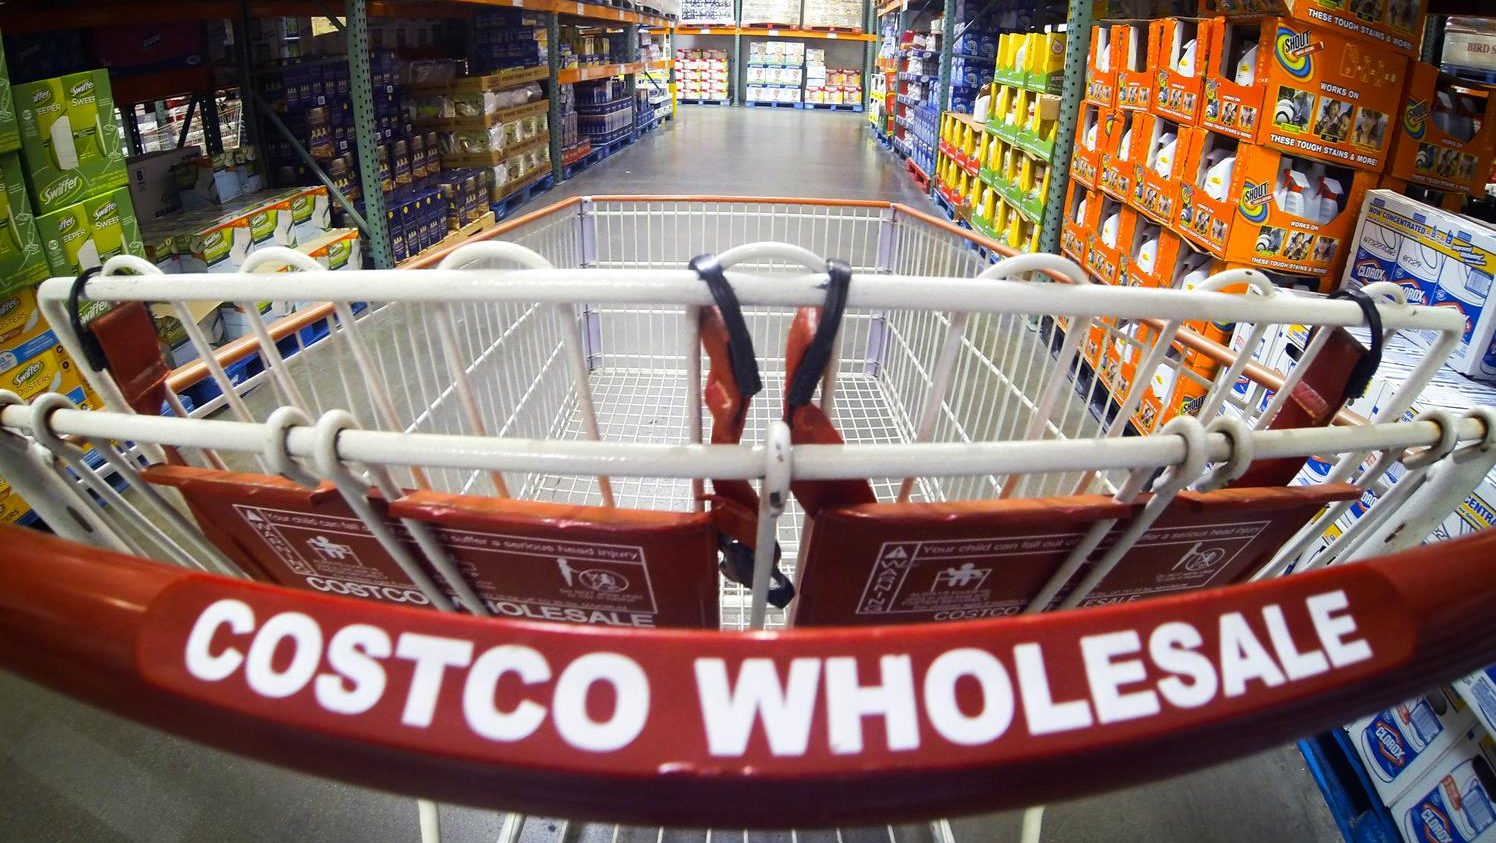 The Costco Shopping Cart is Waiting